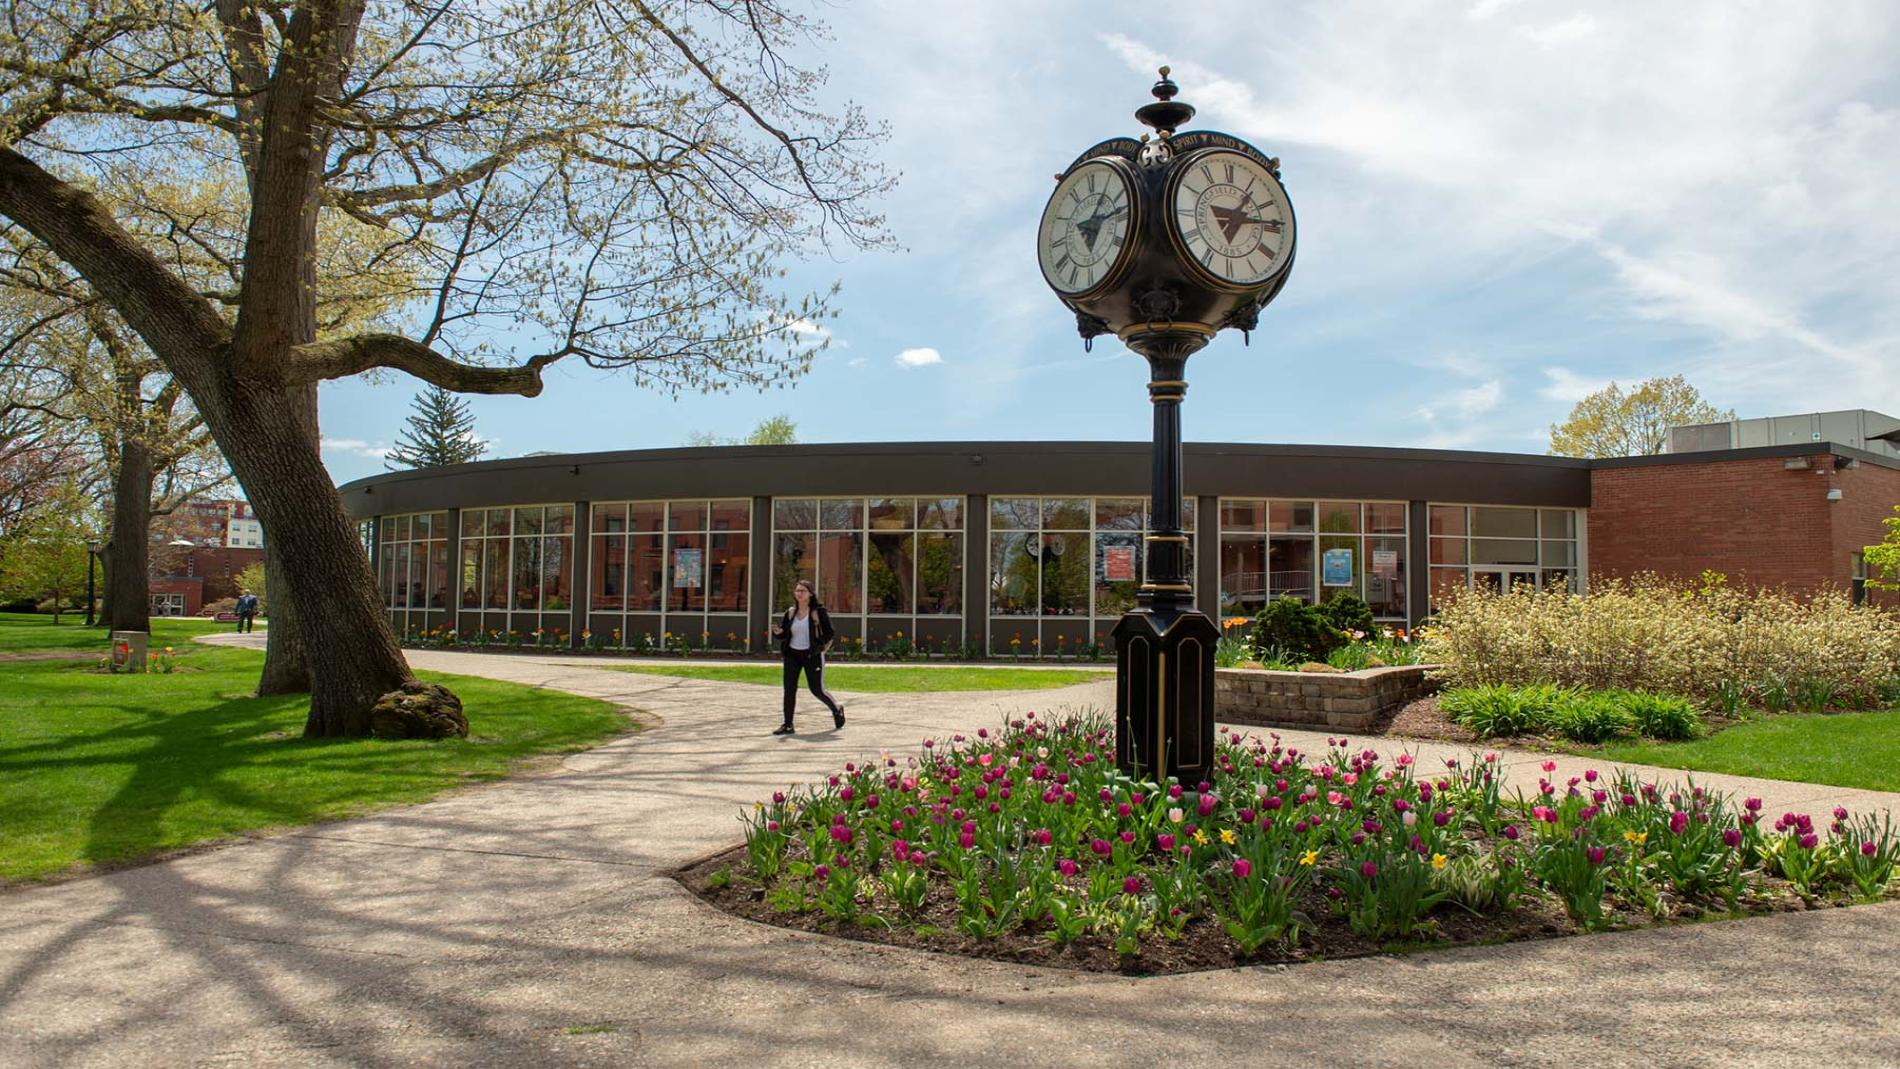 Campus view with clock